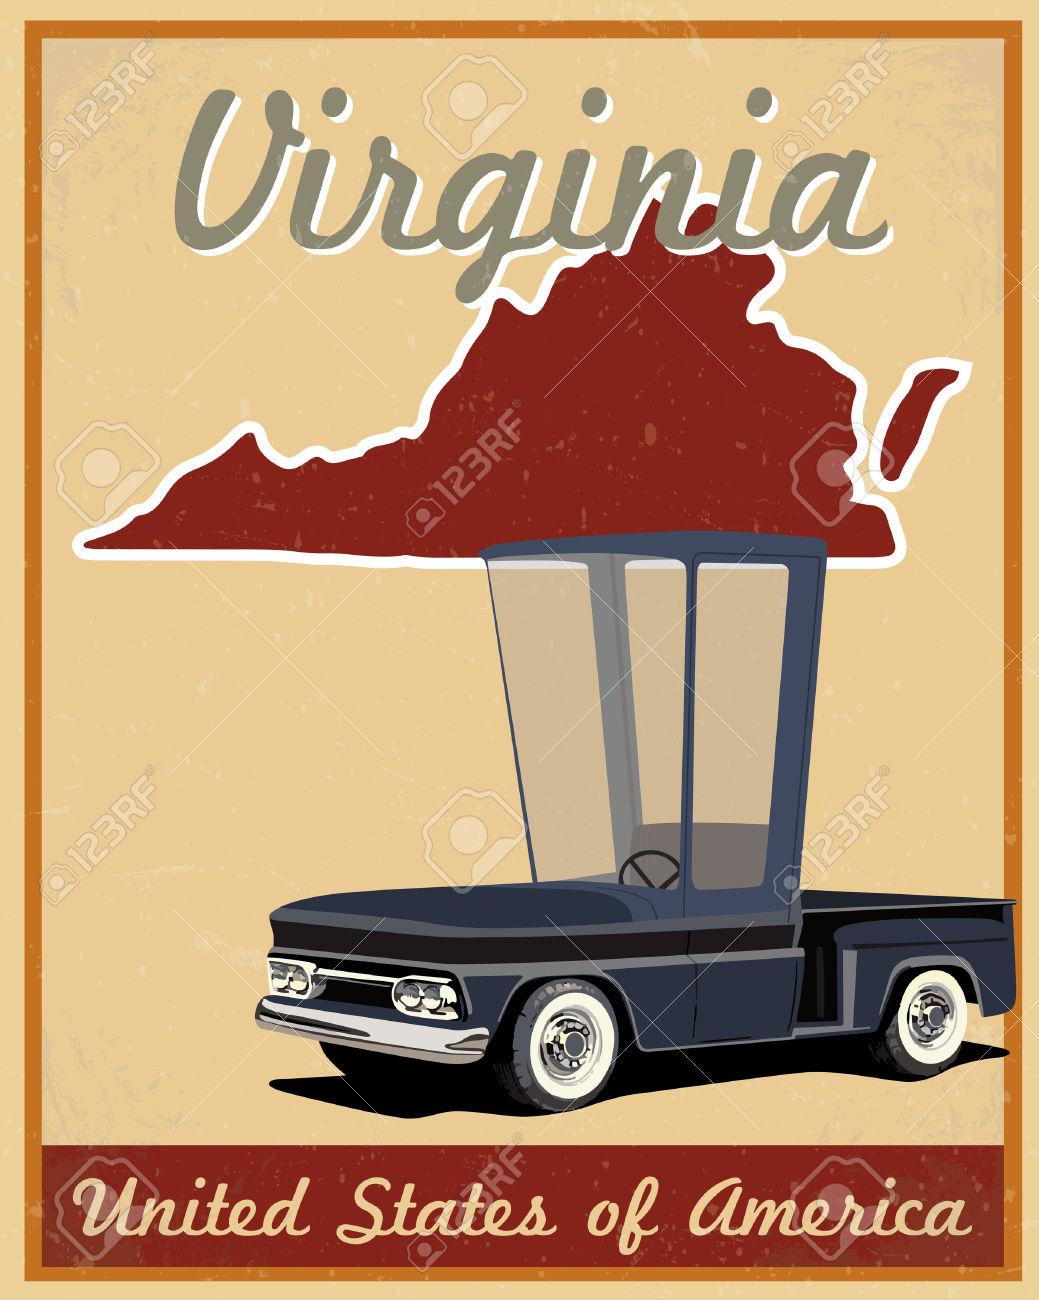 Virginia Road Trip Vintage Poster Royalty Free Cliparts, Vectors.